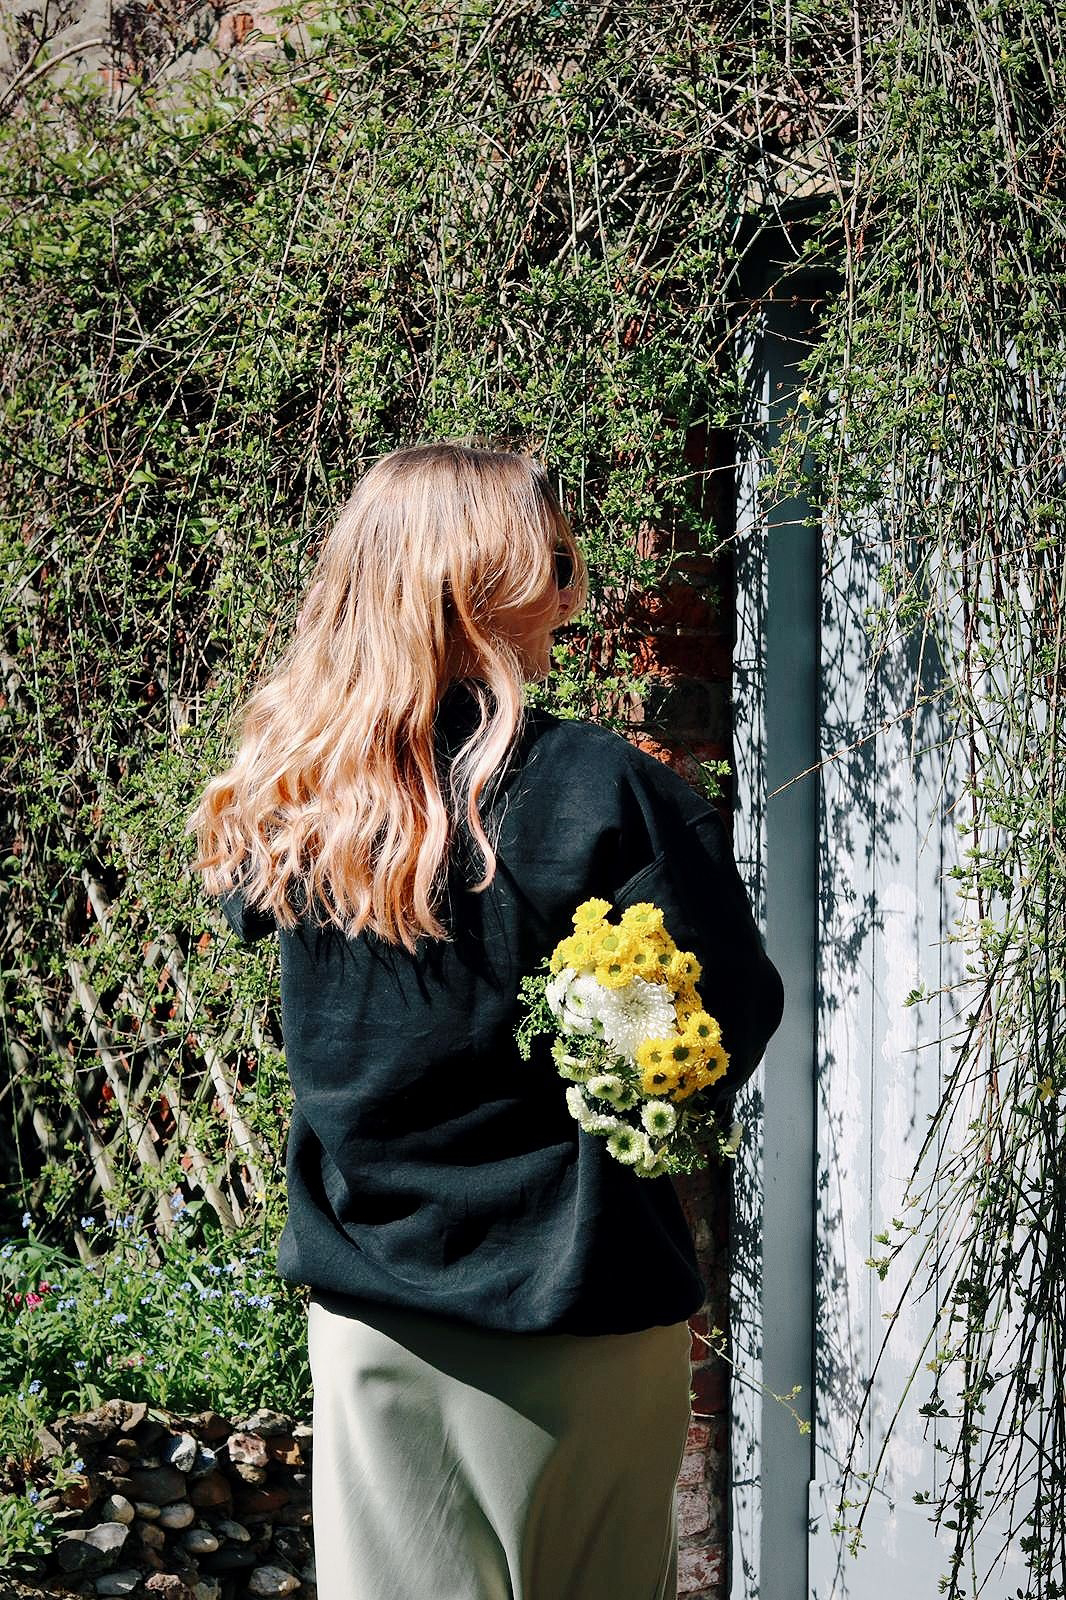 Amy is in an overgrown garden, facing away from the camera holding a bunch of flowers under one arm